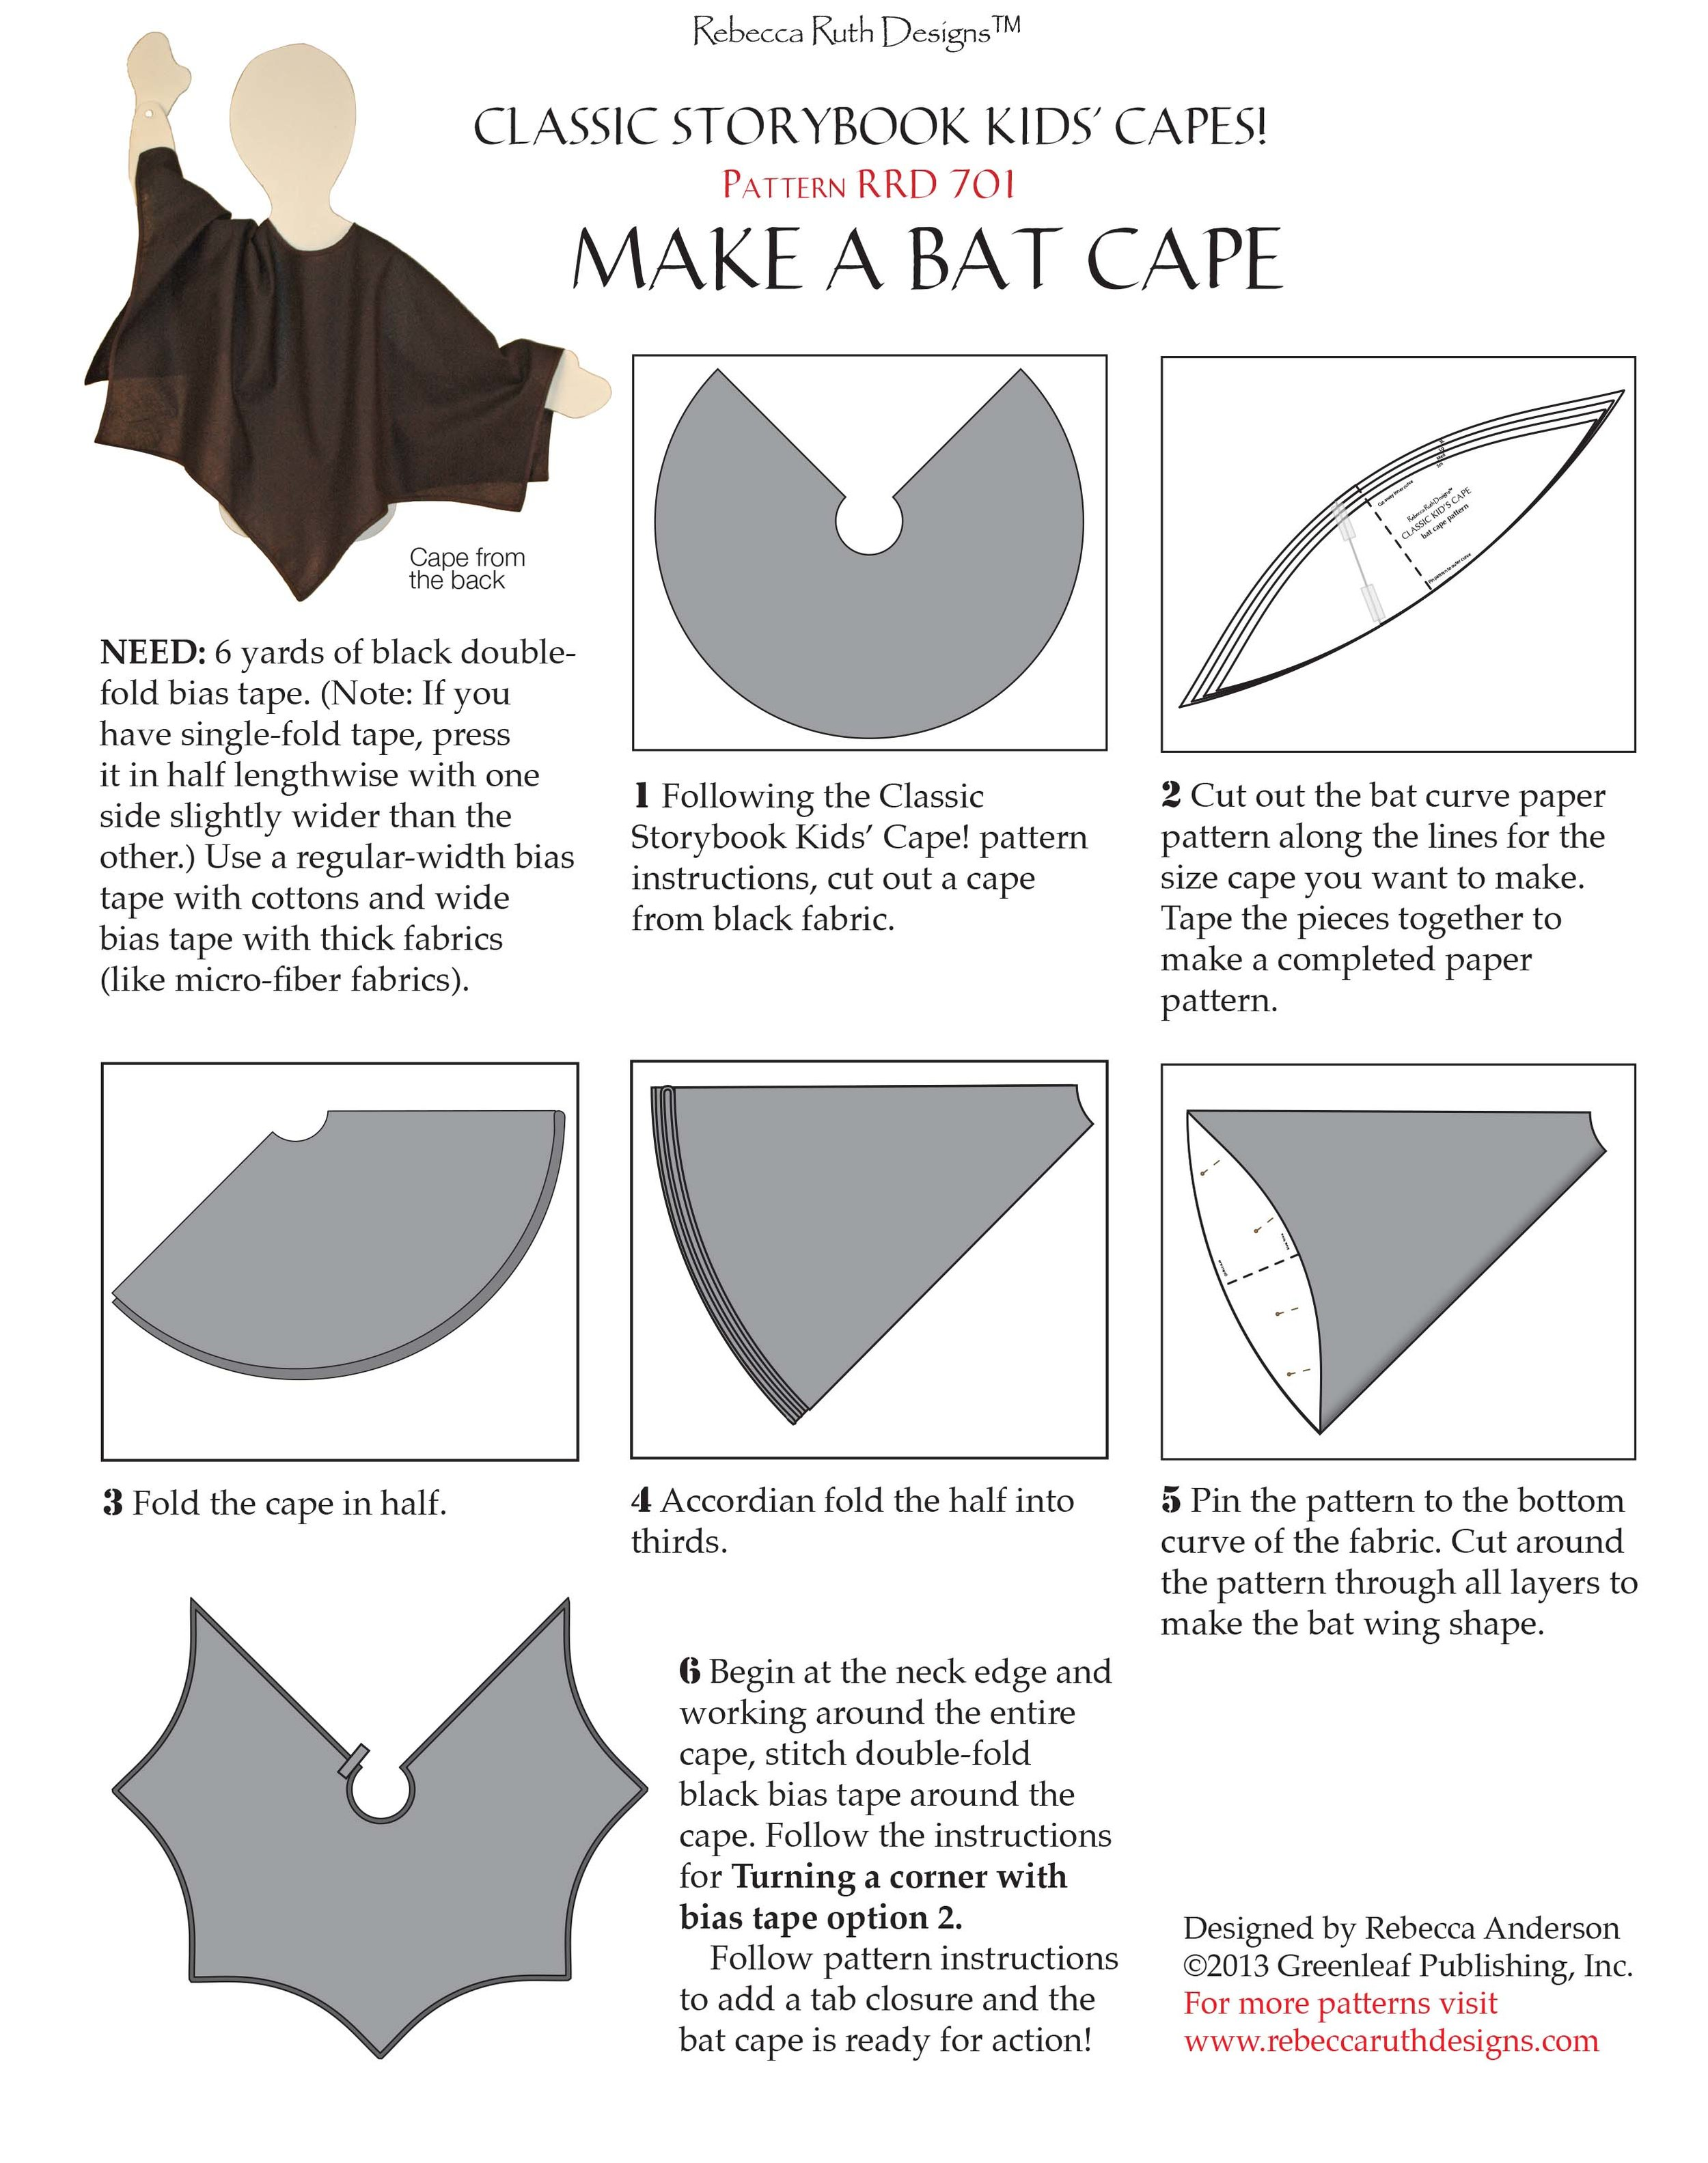 Wizard Cloak Pattern : wizard, cloak, pattern, Kids', Capes!, Rebecca, Designs